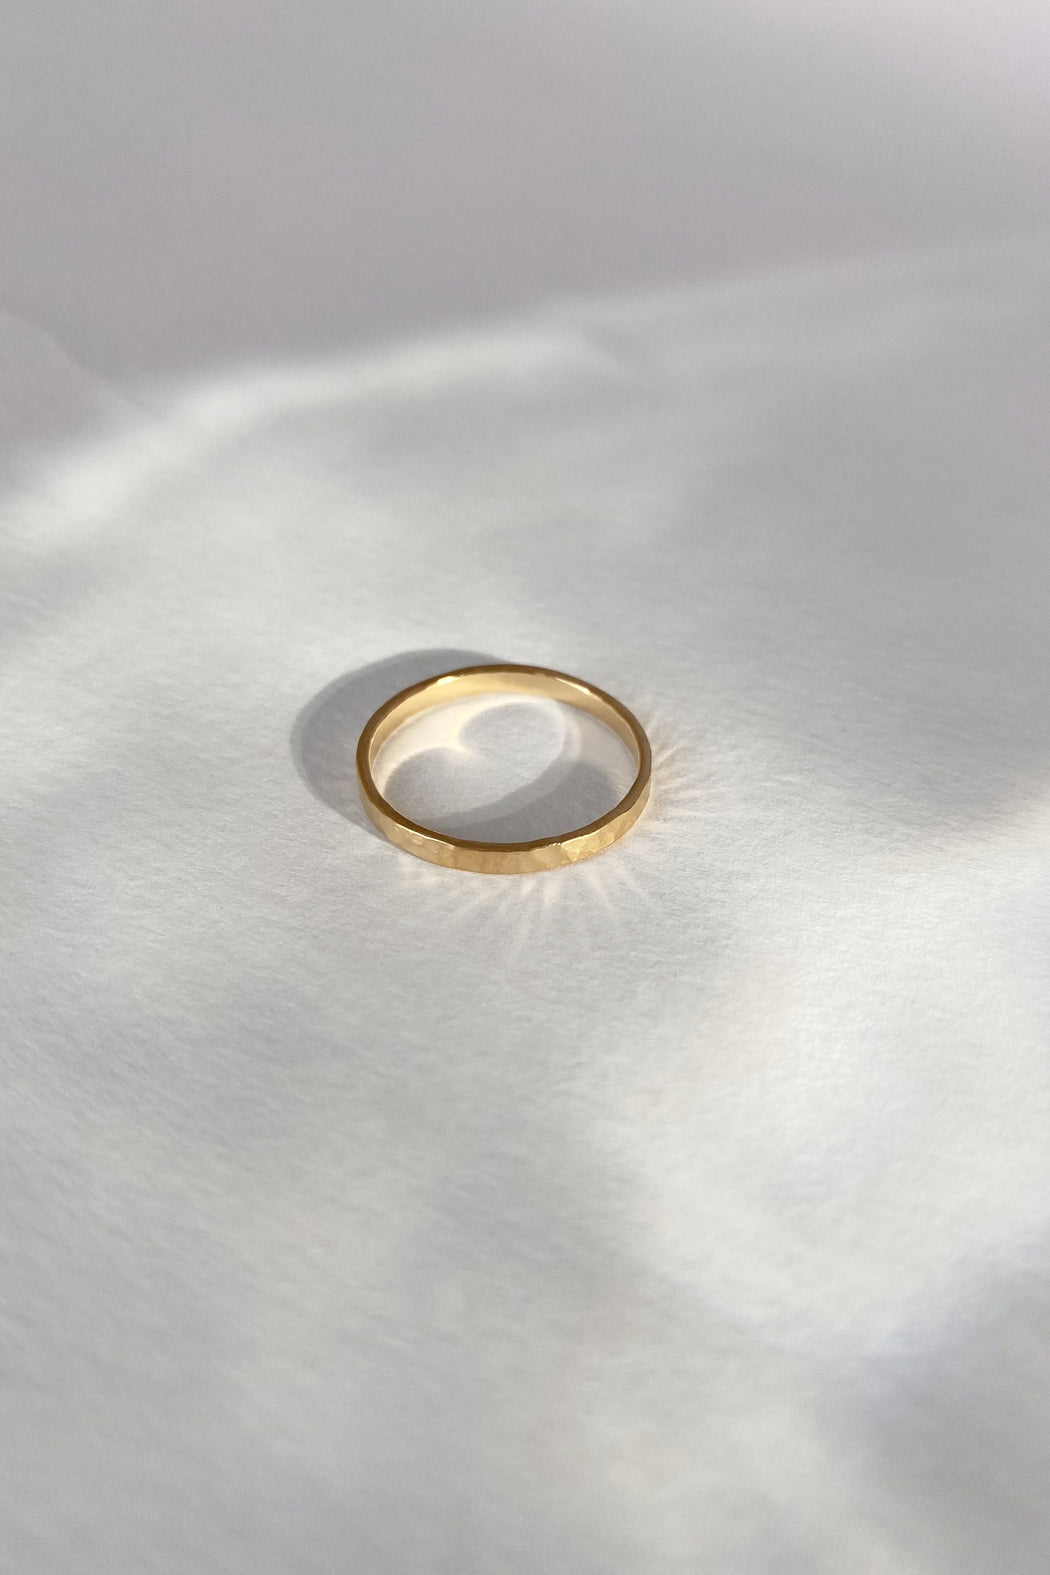 BAIUSHKI ISIA small ring